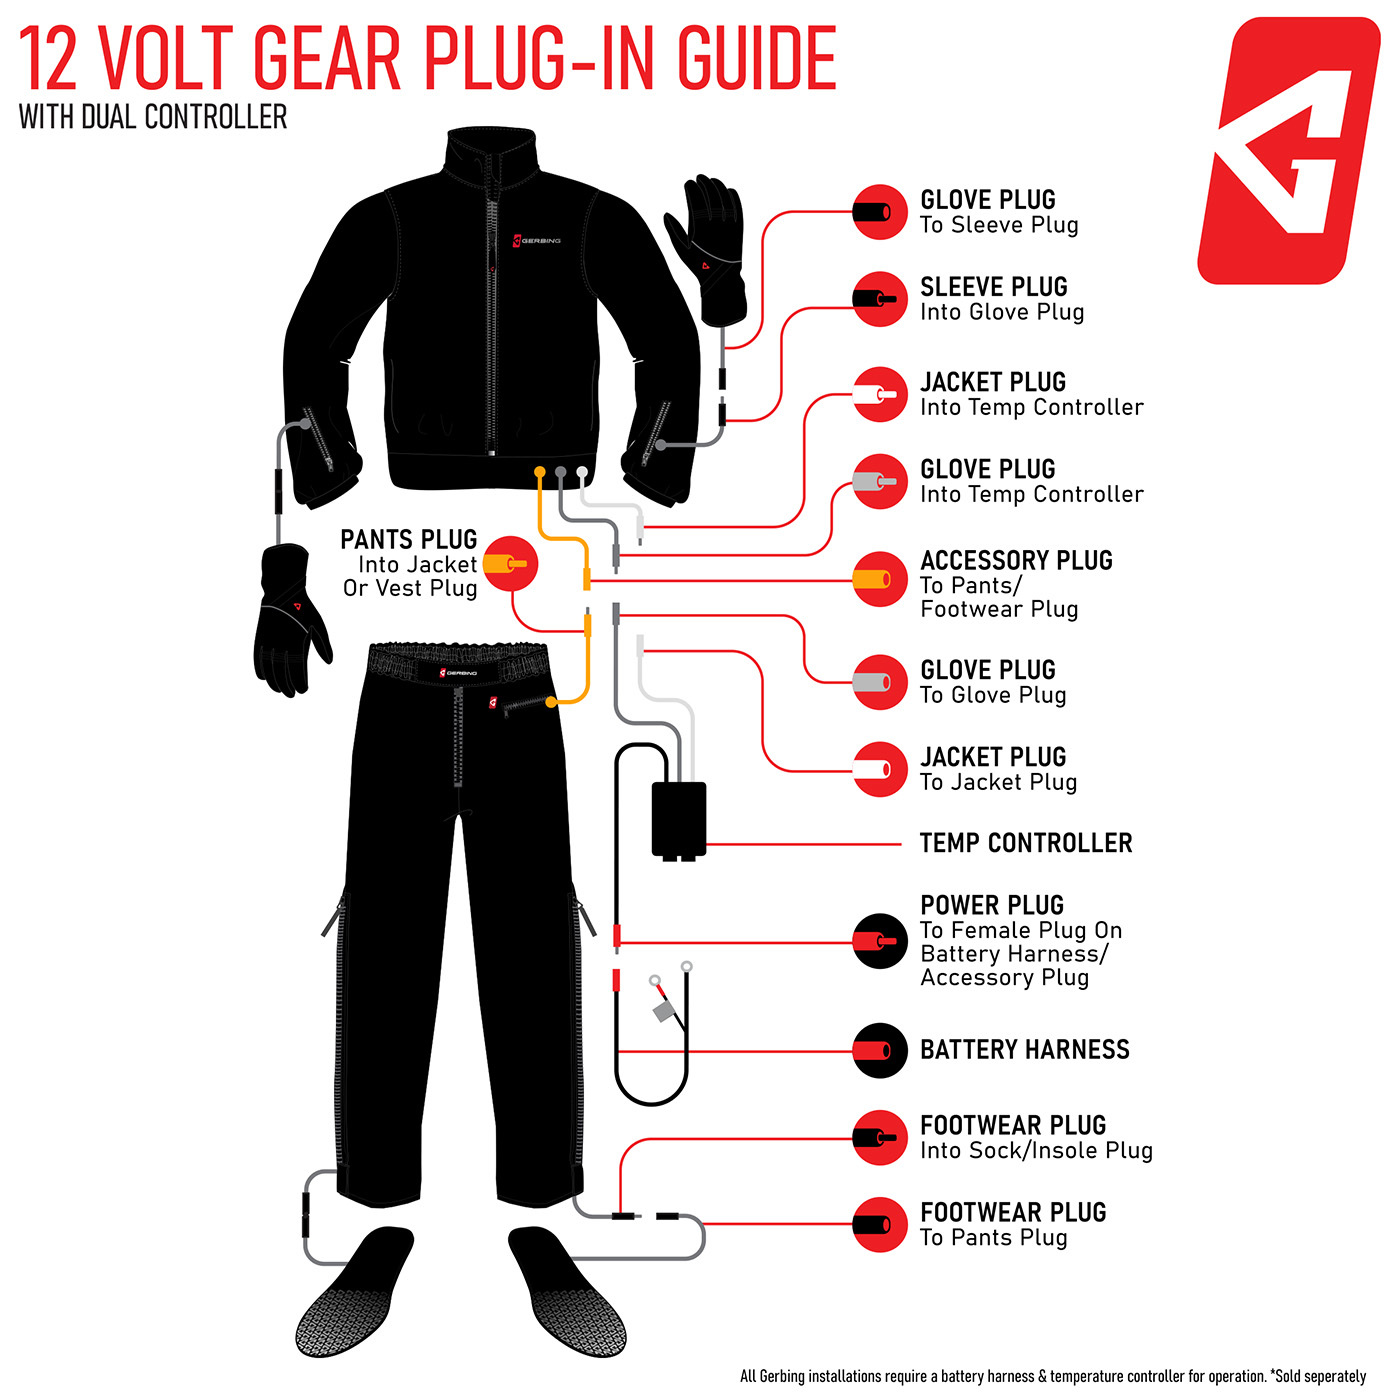 Gerbing Motorcycle Heated Clothing Guide